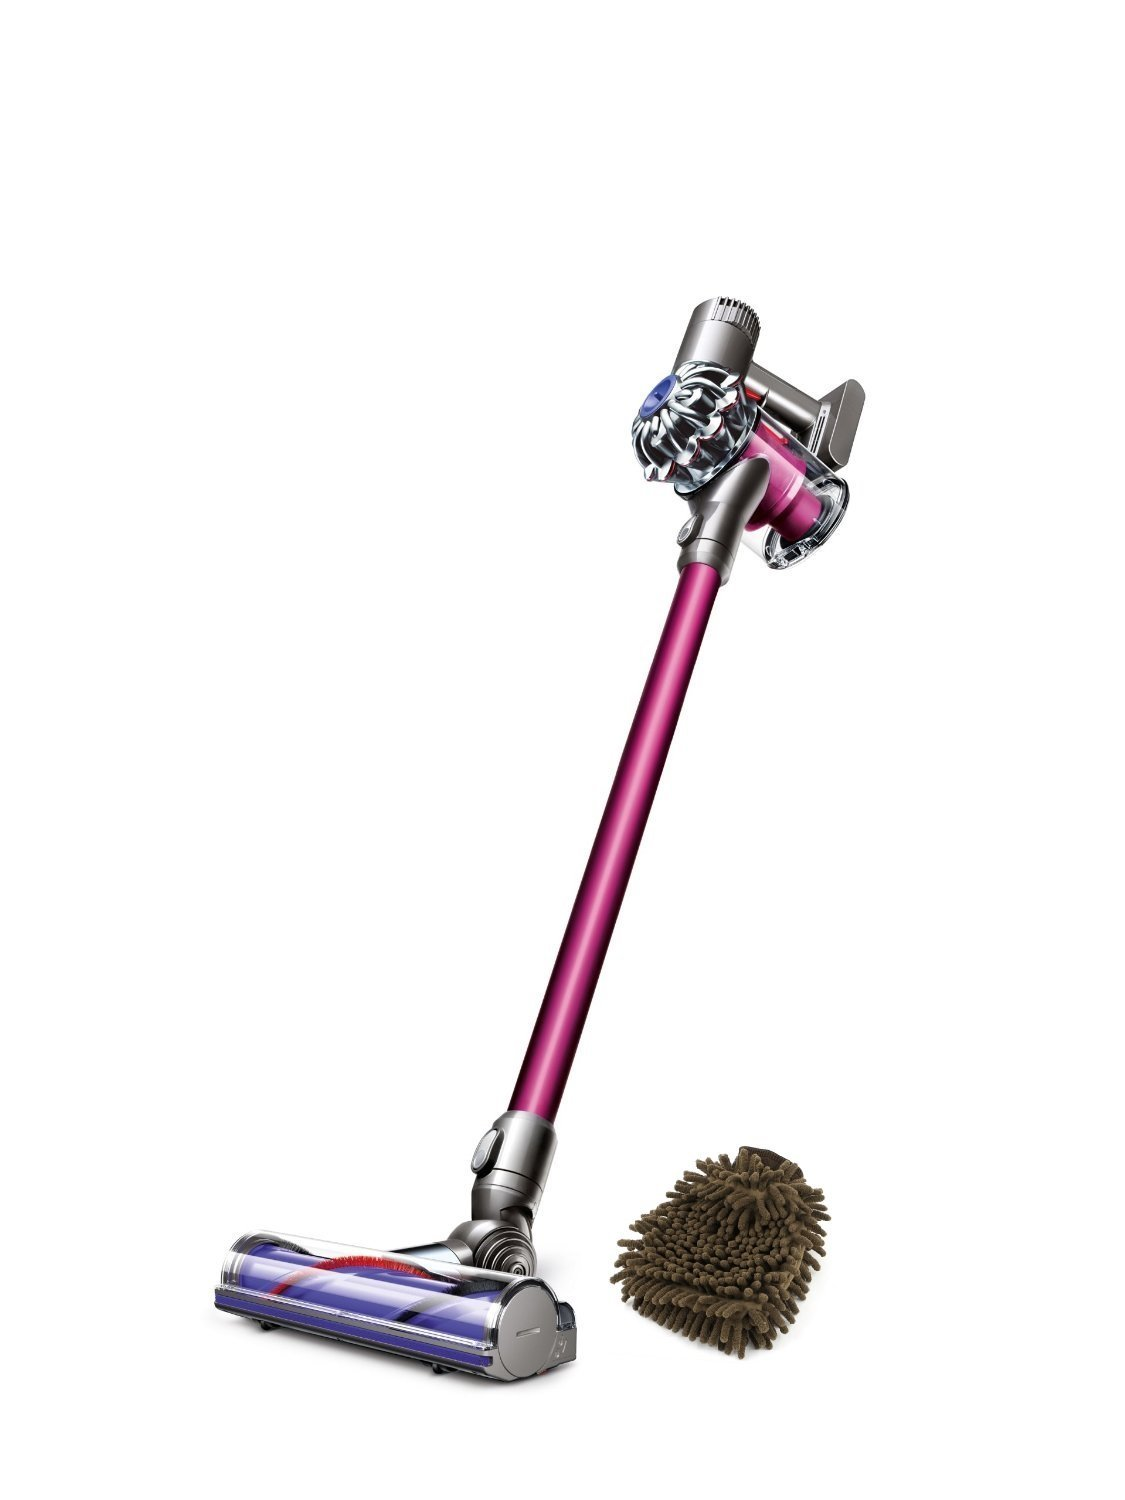 Dyson cordless v6 motorhead dyson hot and cool am05 white